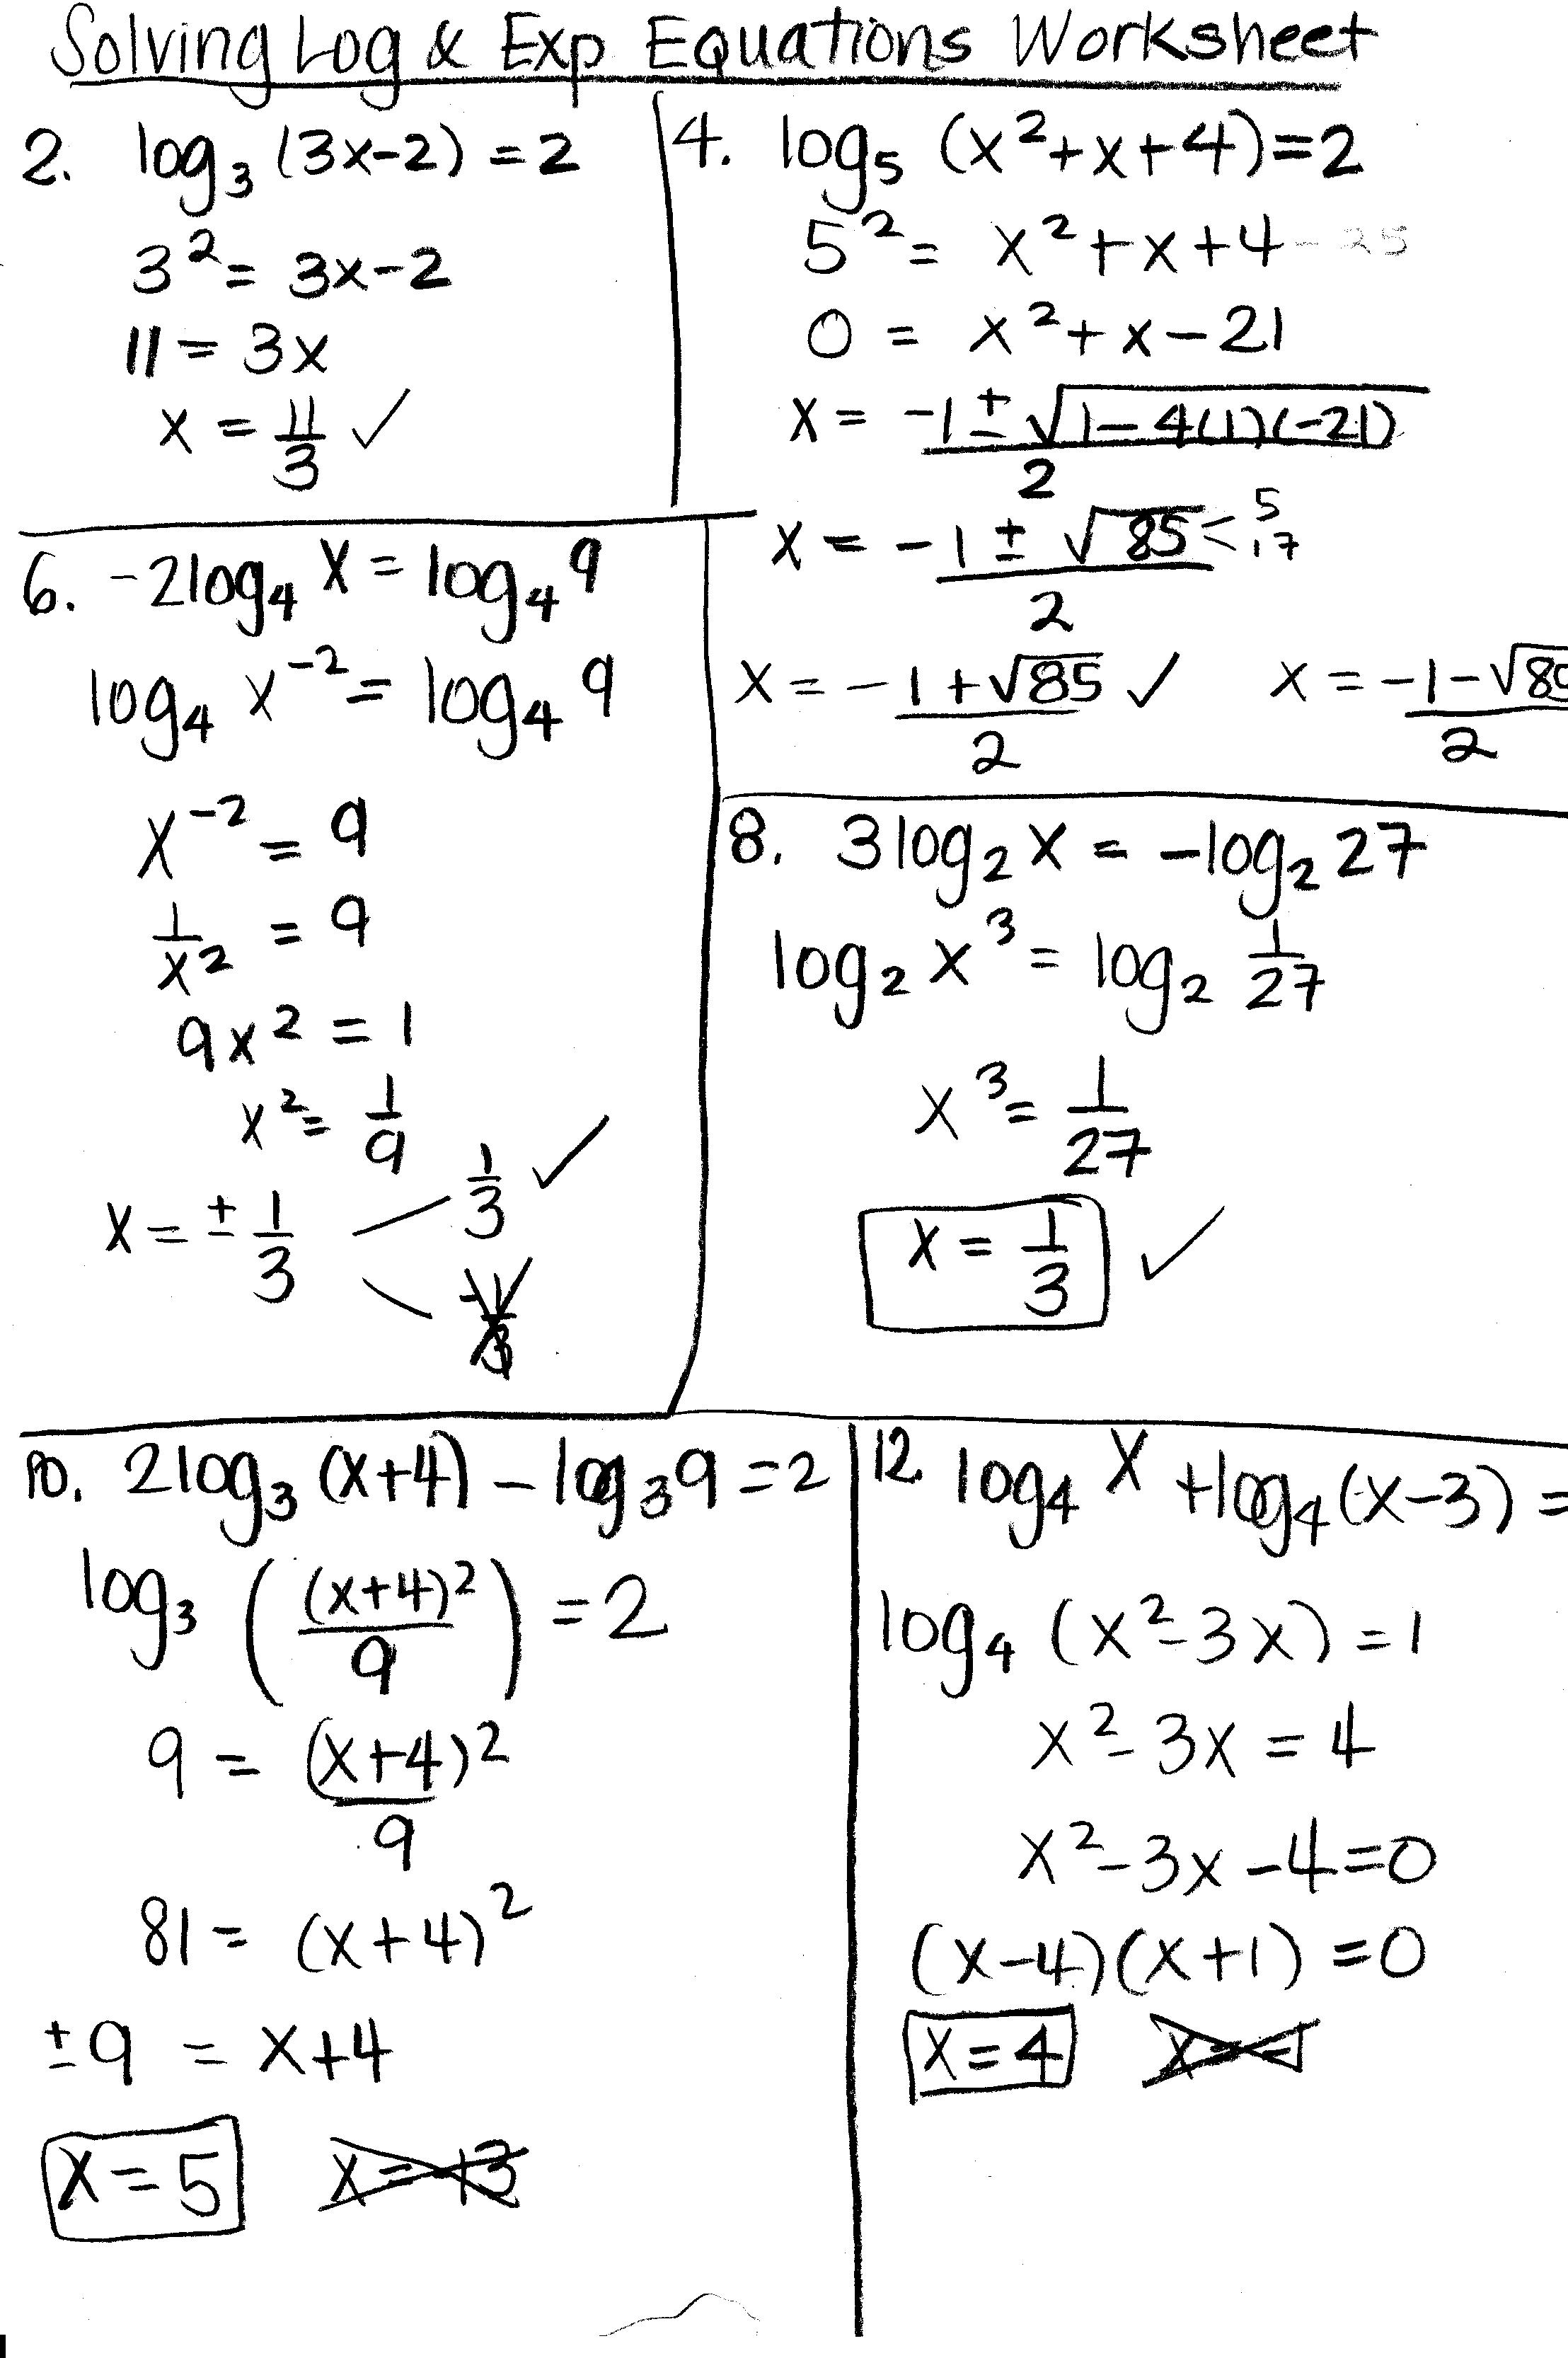 Solving Trig Equations Worksheet Free Worksheets Library – Trig Equations Worksheet